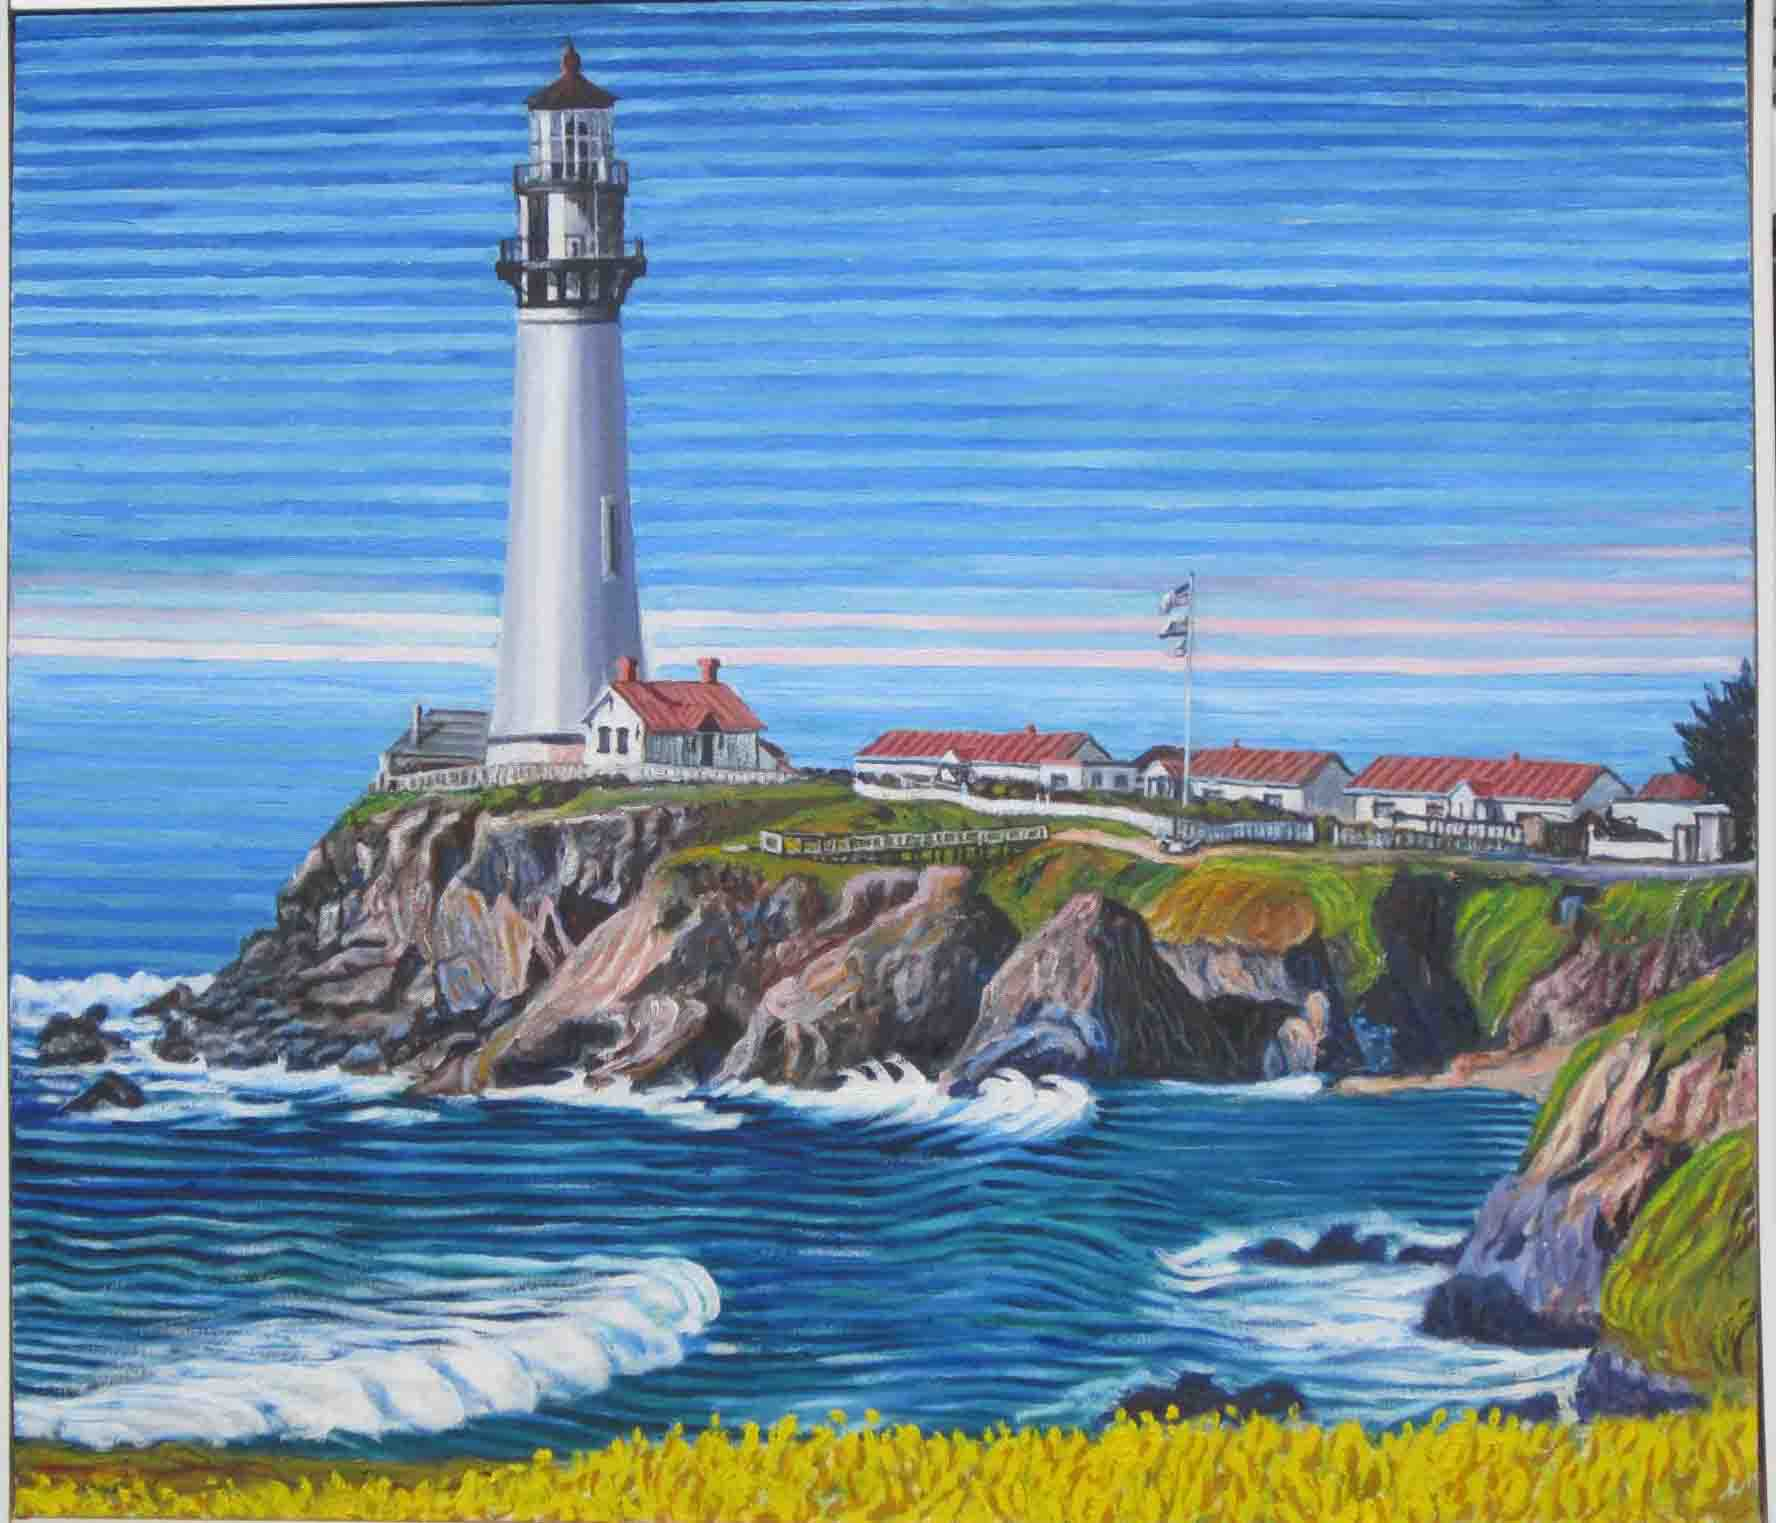 Pigeon point lighthouse - Linear Painting - Prakash N Chandras